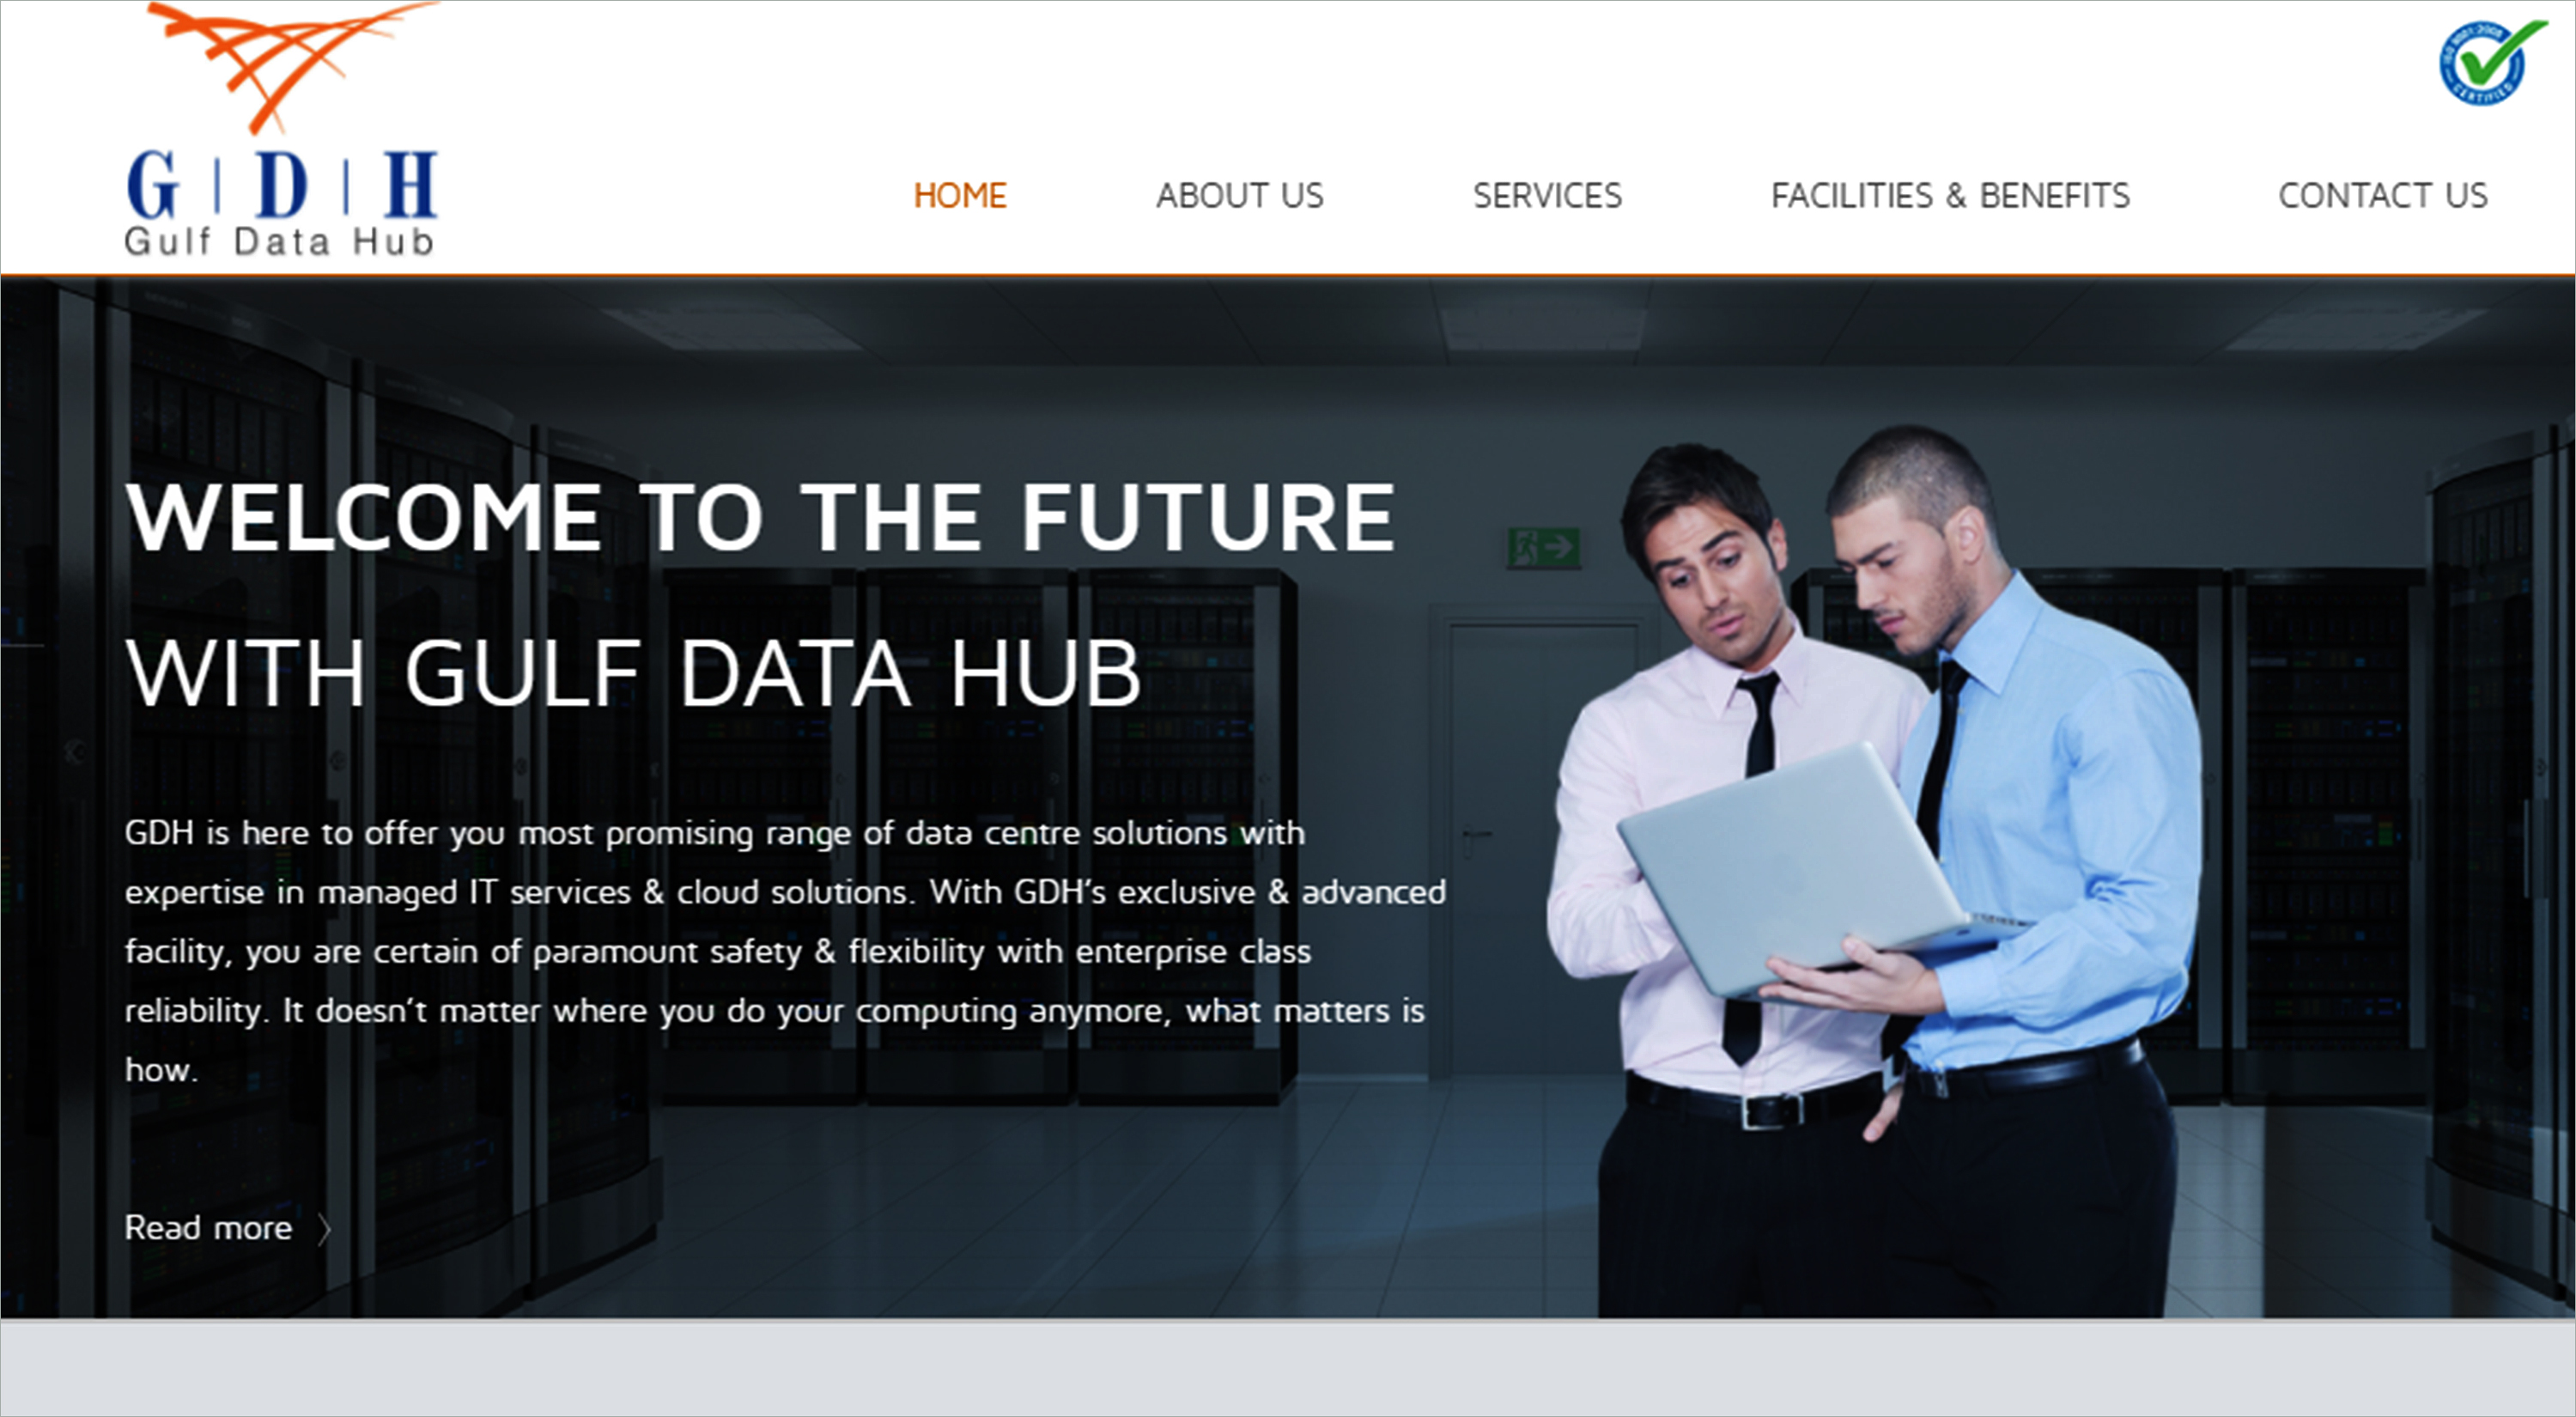 Etisalat exclusively leases wholesale data capacity from Gulf Data Hub